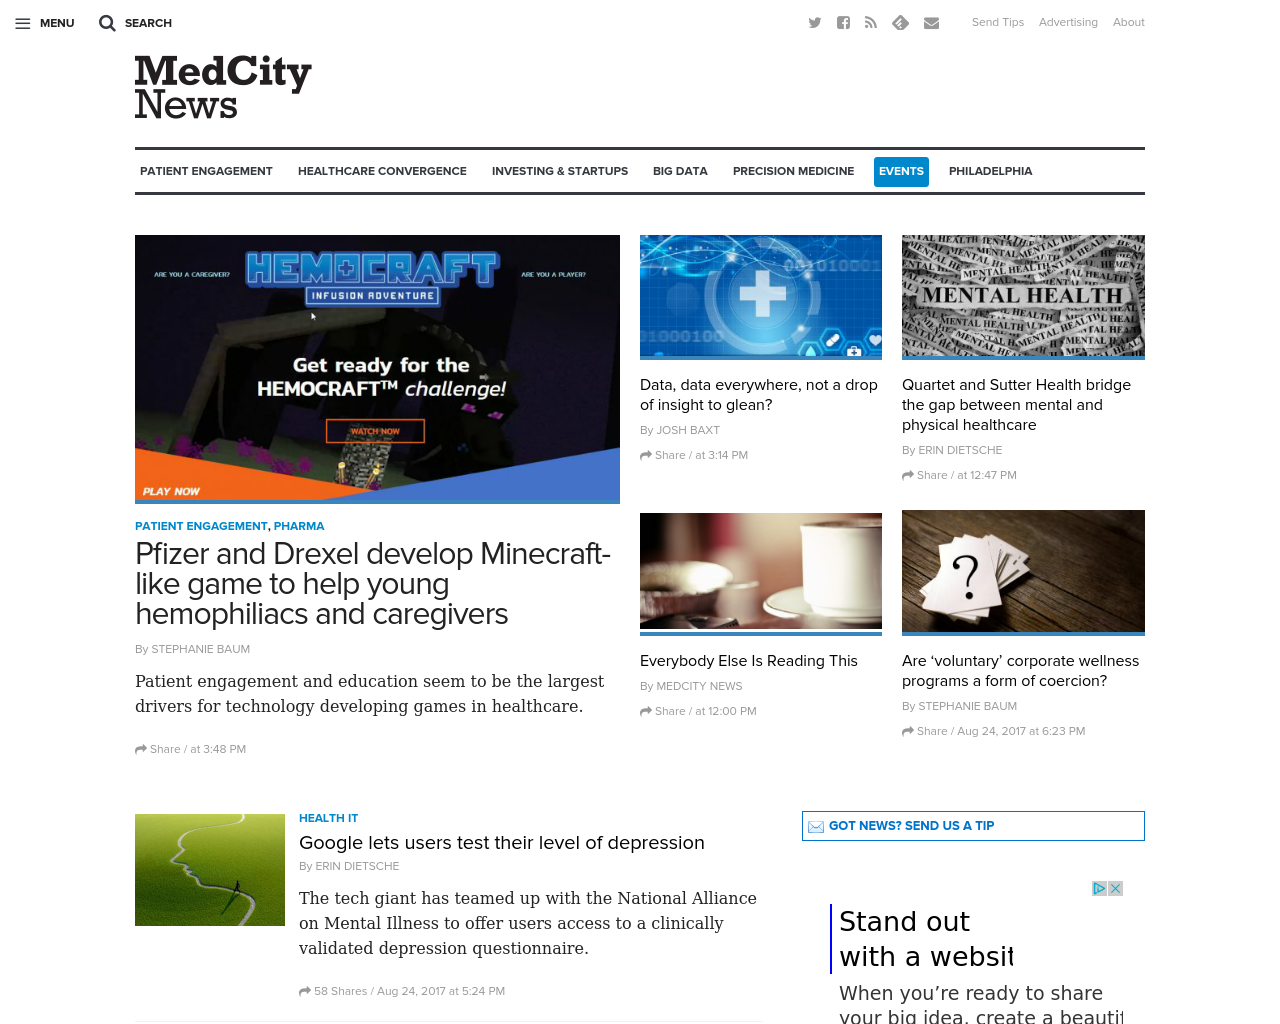 MedCity-News-Advertising-Reviews-Pricing